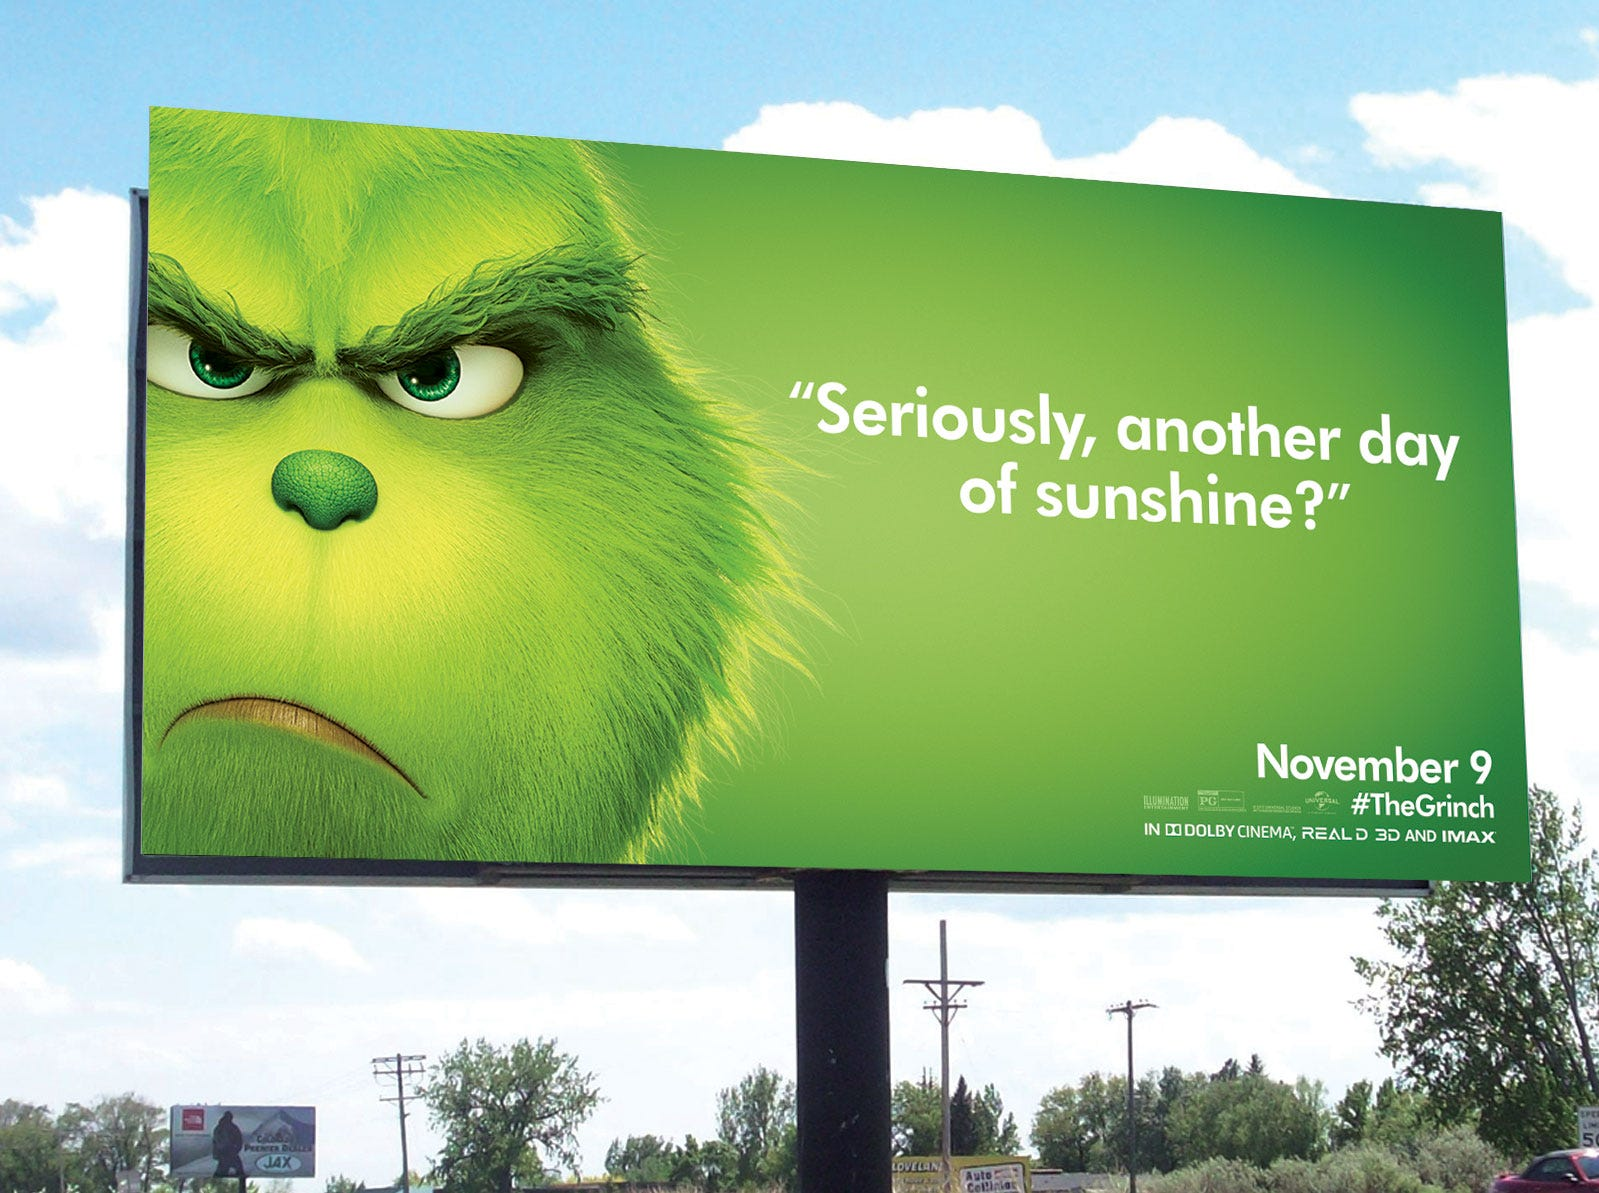 Not a sunshine fan, The Grinch gets snarky about Los Angeles weather.